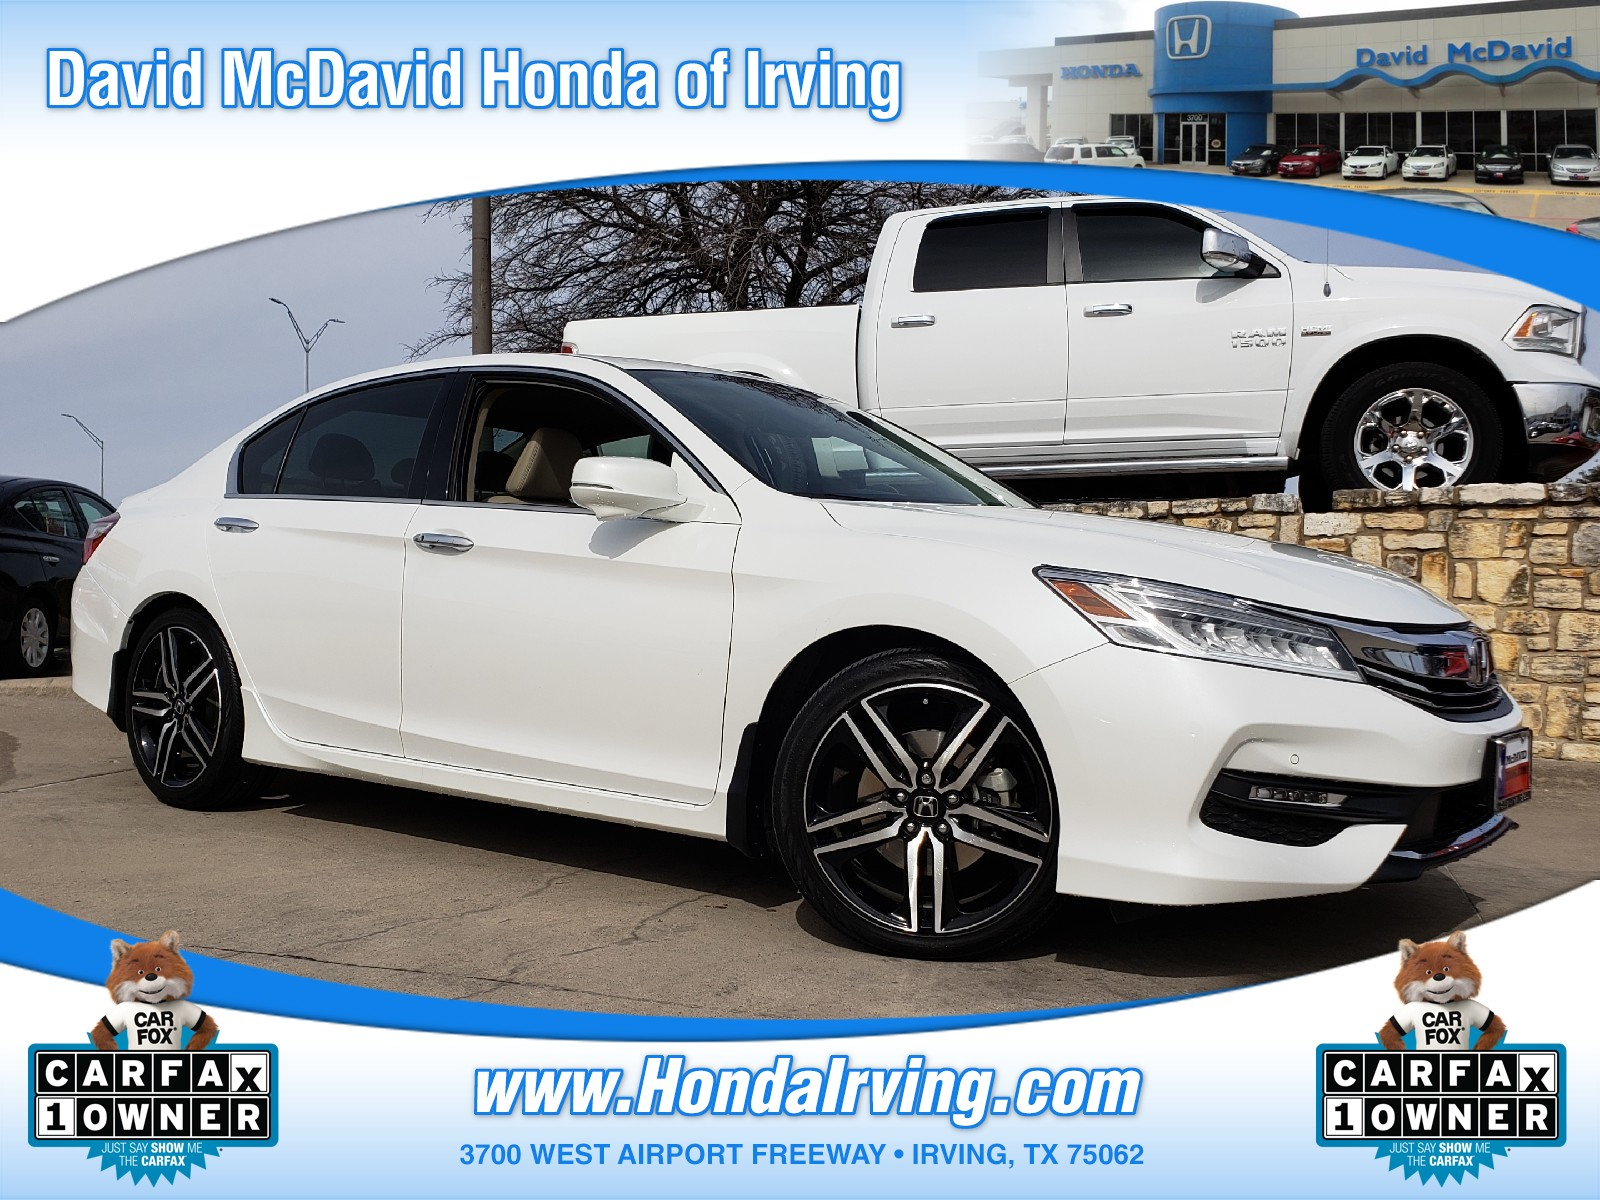 Beautiful Carfax Used Cars by Owner